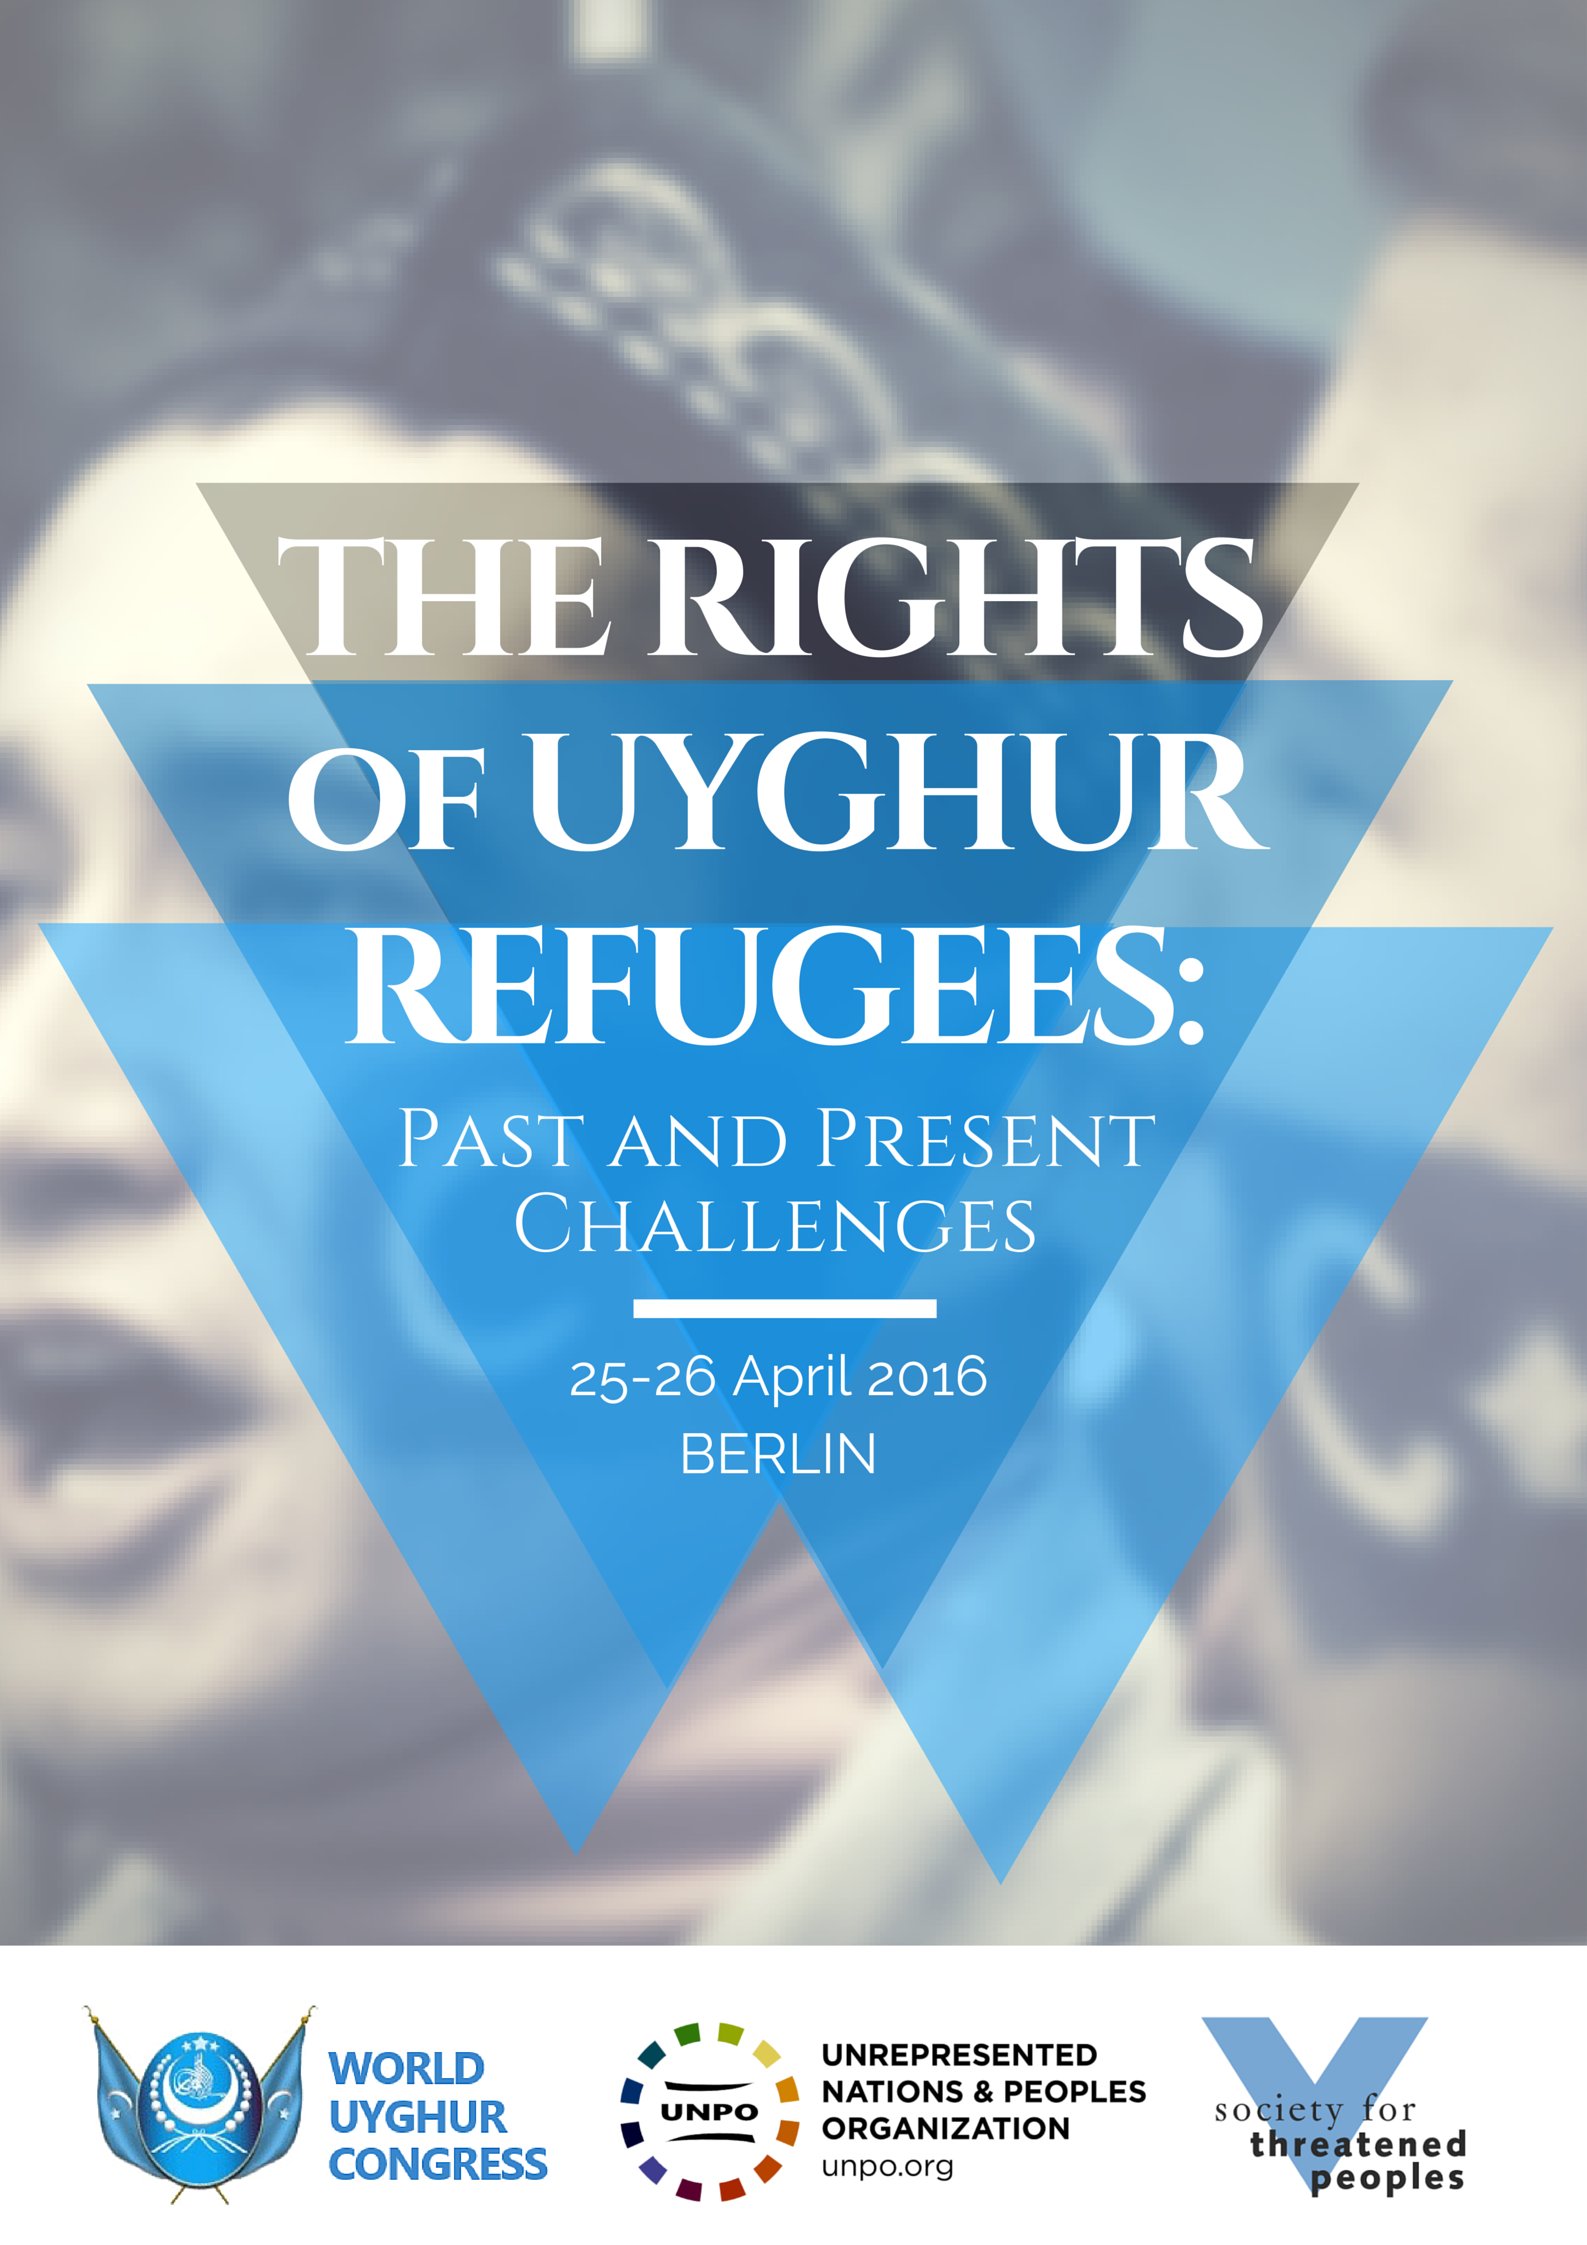 UNPO Announces Berlin Conference on Uyghur Refugees